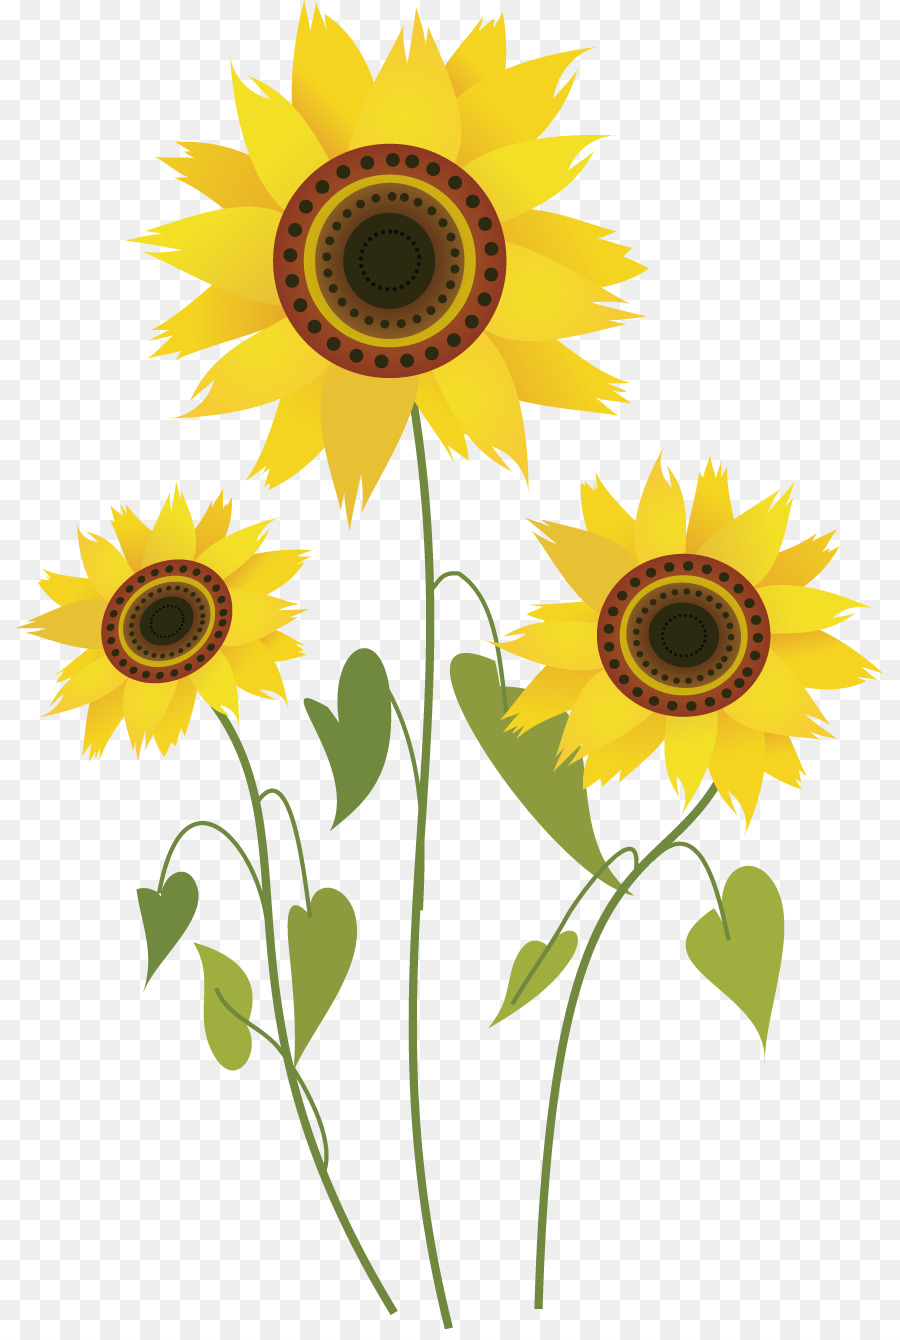 common sunflower drawing computer file cartoon sunflower